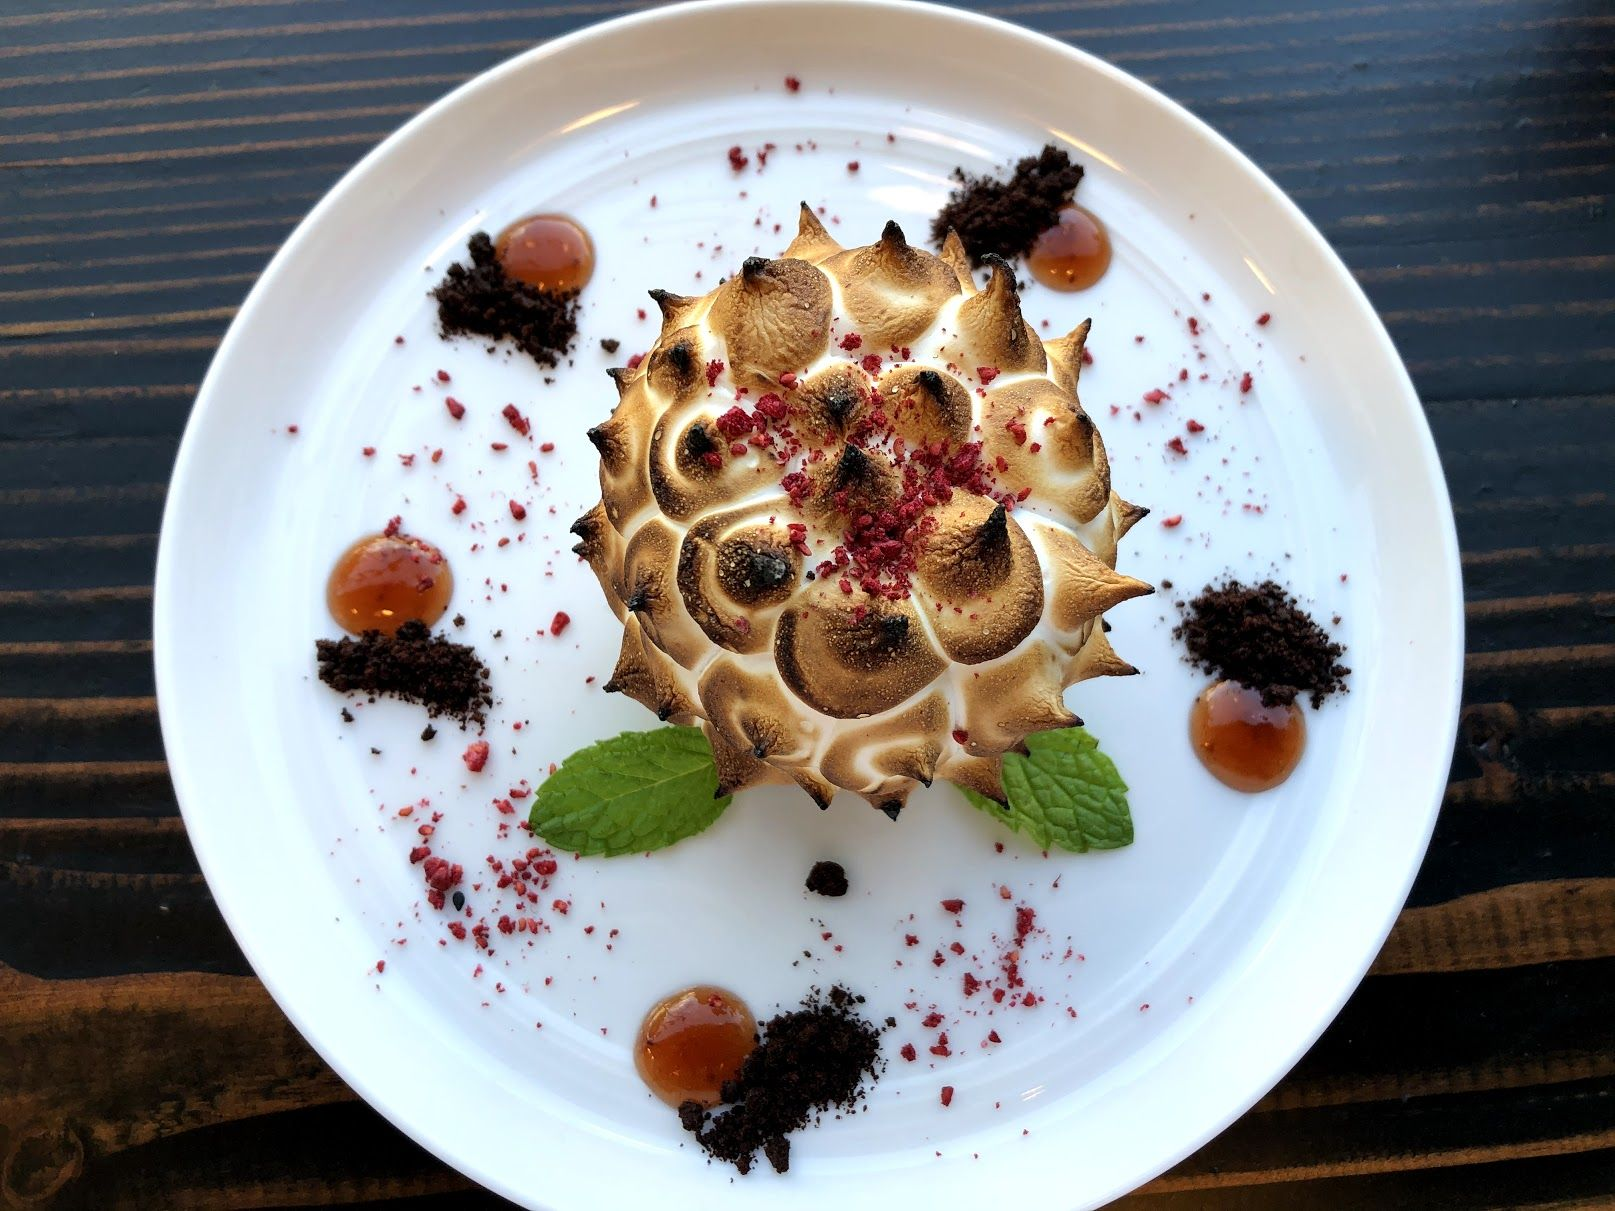 This Café Is Known For Their Gorgeous Desserts